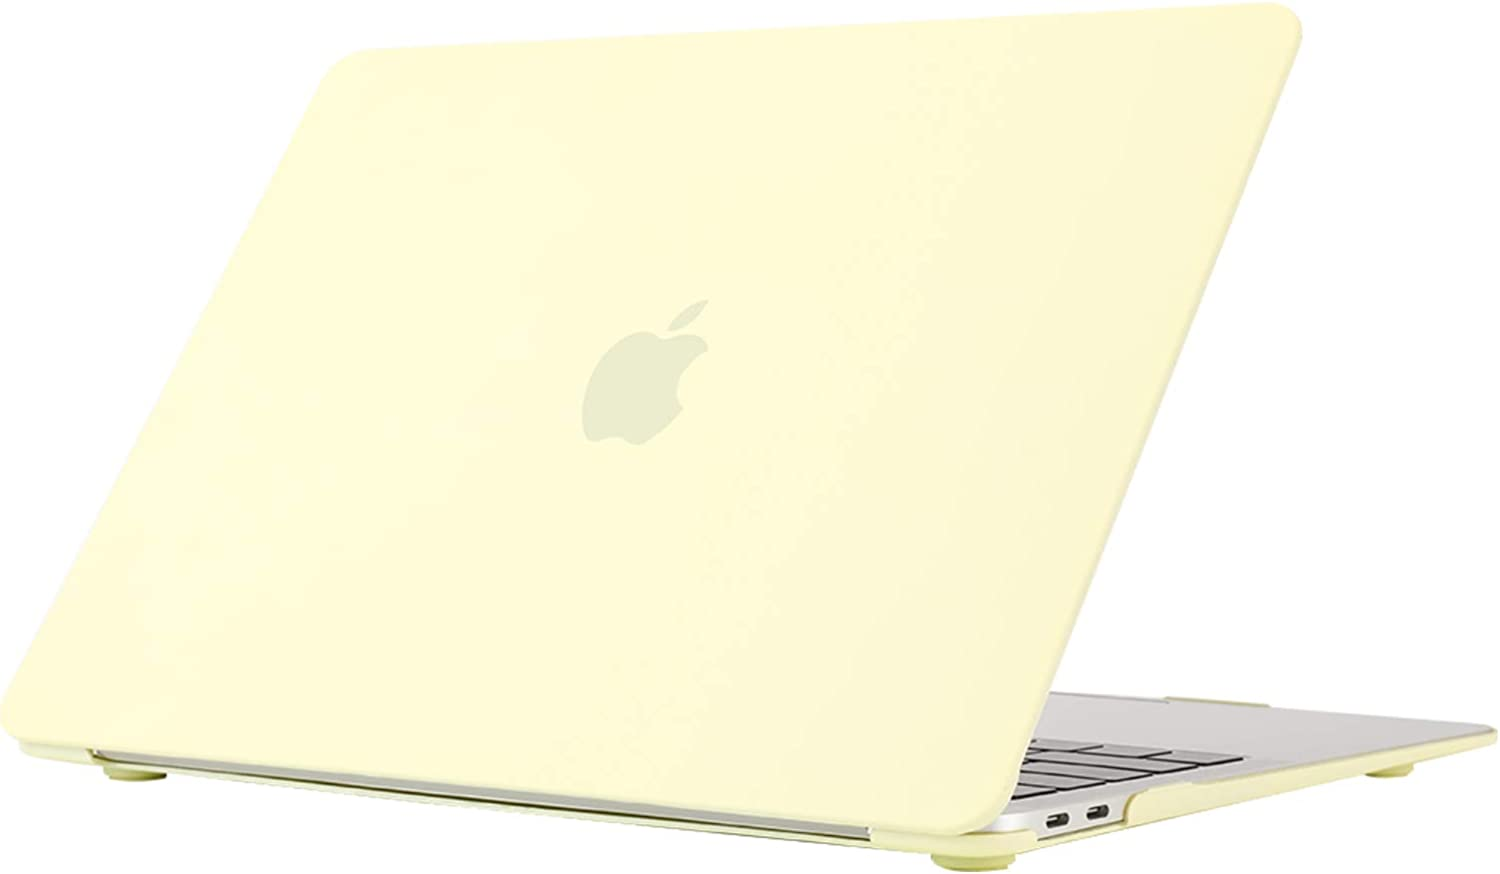 Se7enline A1932/A2179 MacBook Air 13 Inch Case 2020/2019/2018 New Smooth Matte Frosted Plastic Hard Shell Carrying Case Cover for MacBook Air 13-Inch Retina Display with Touch ID, Mellow Yellow